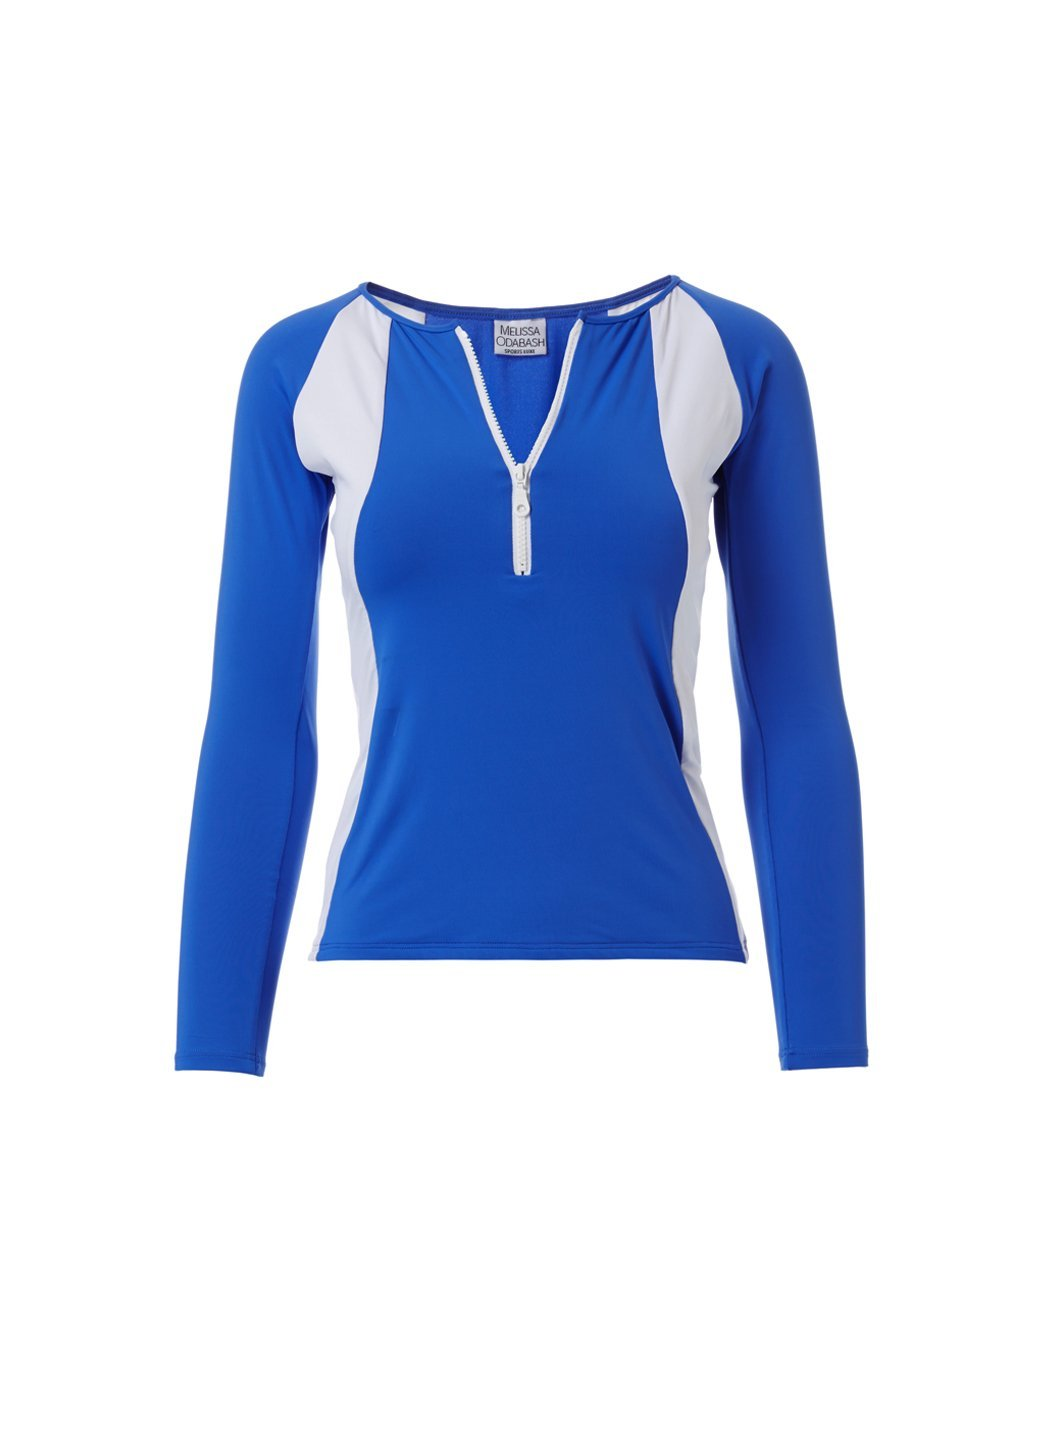 Bondi Cobalt White Sports Long Sleeve Rash Vest Top